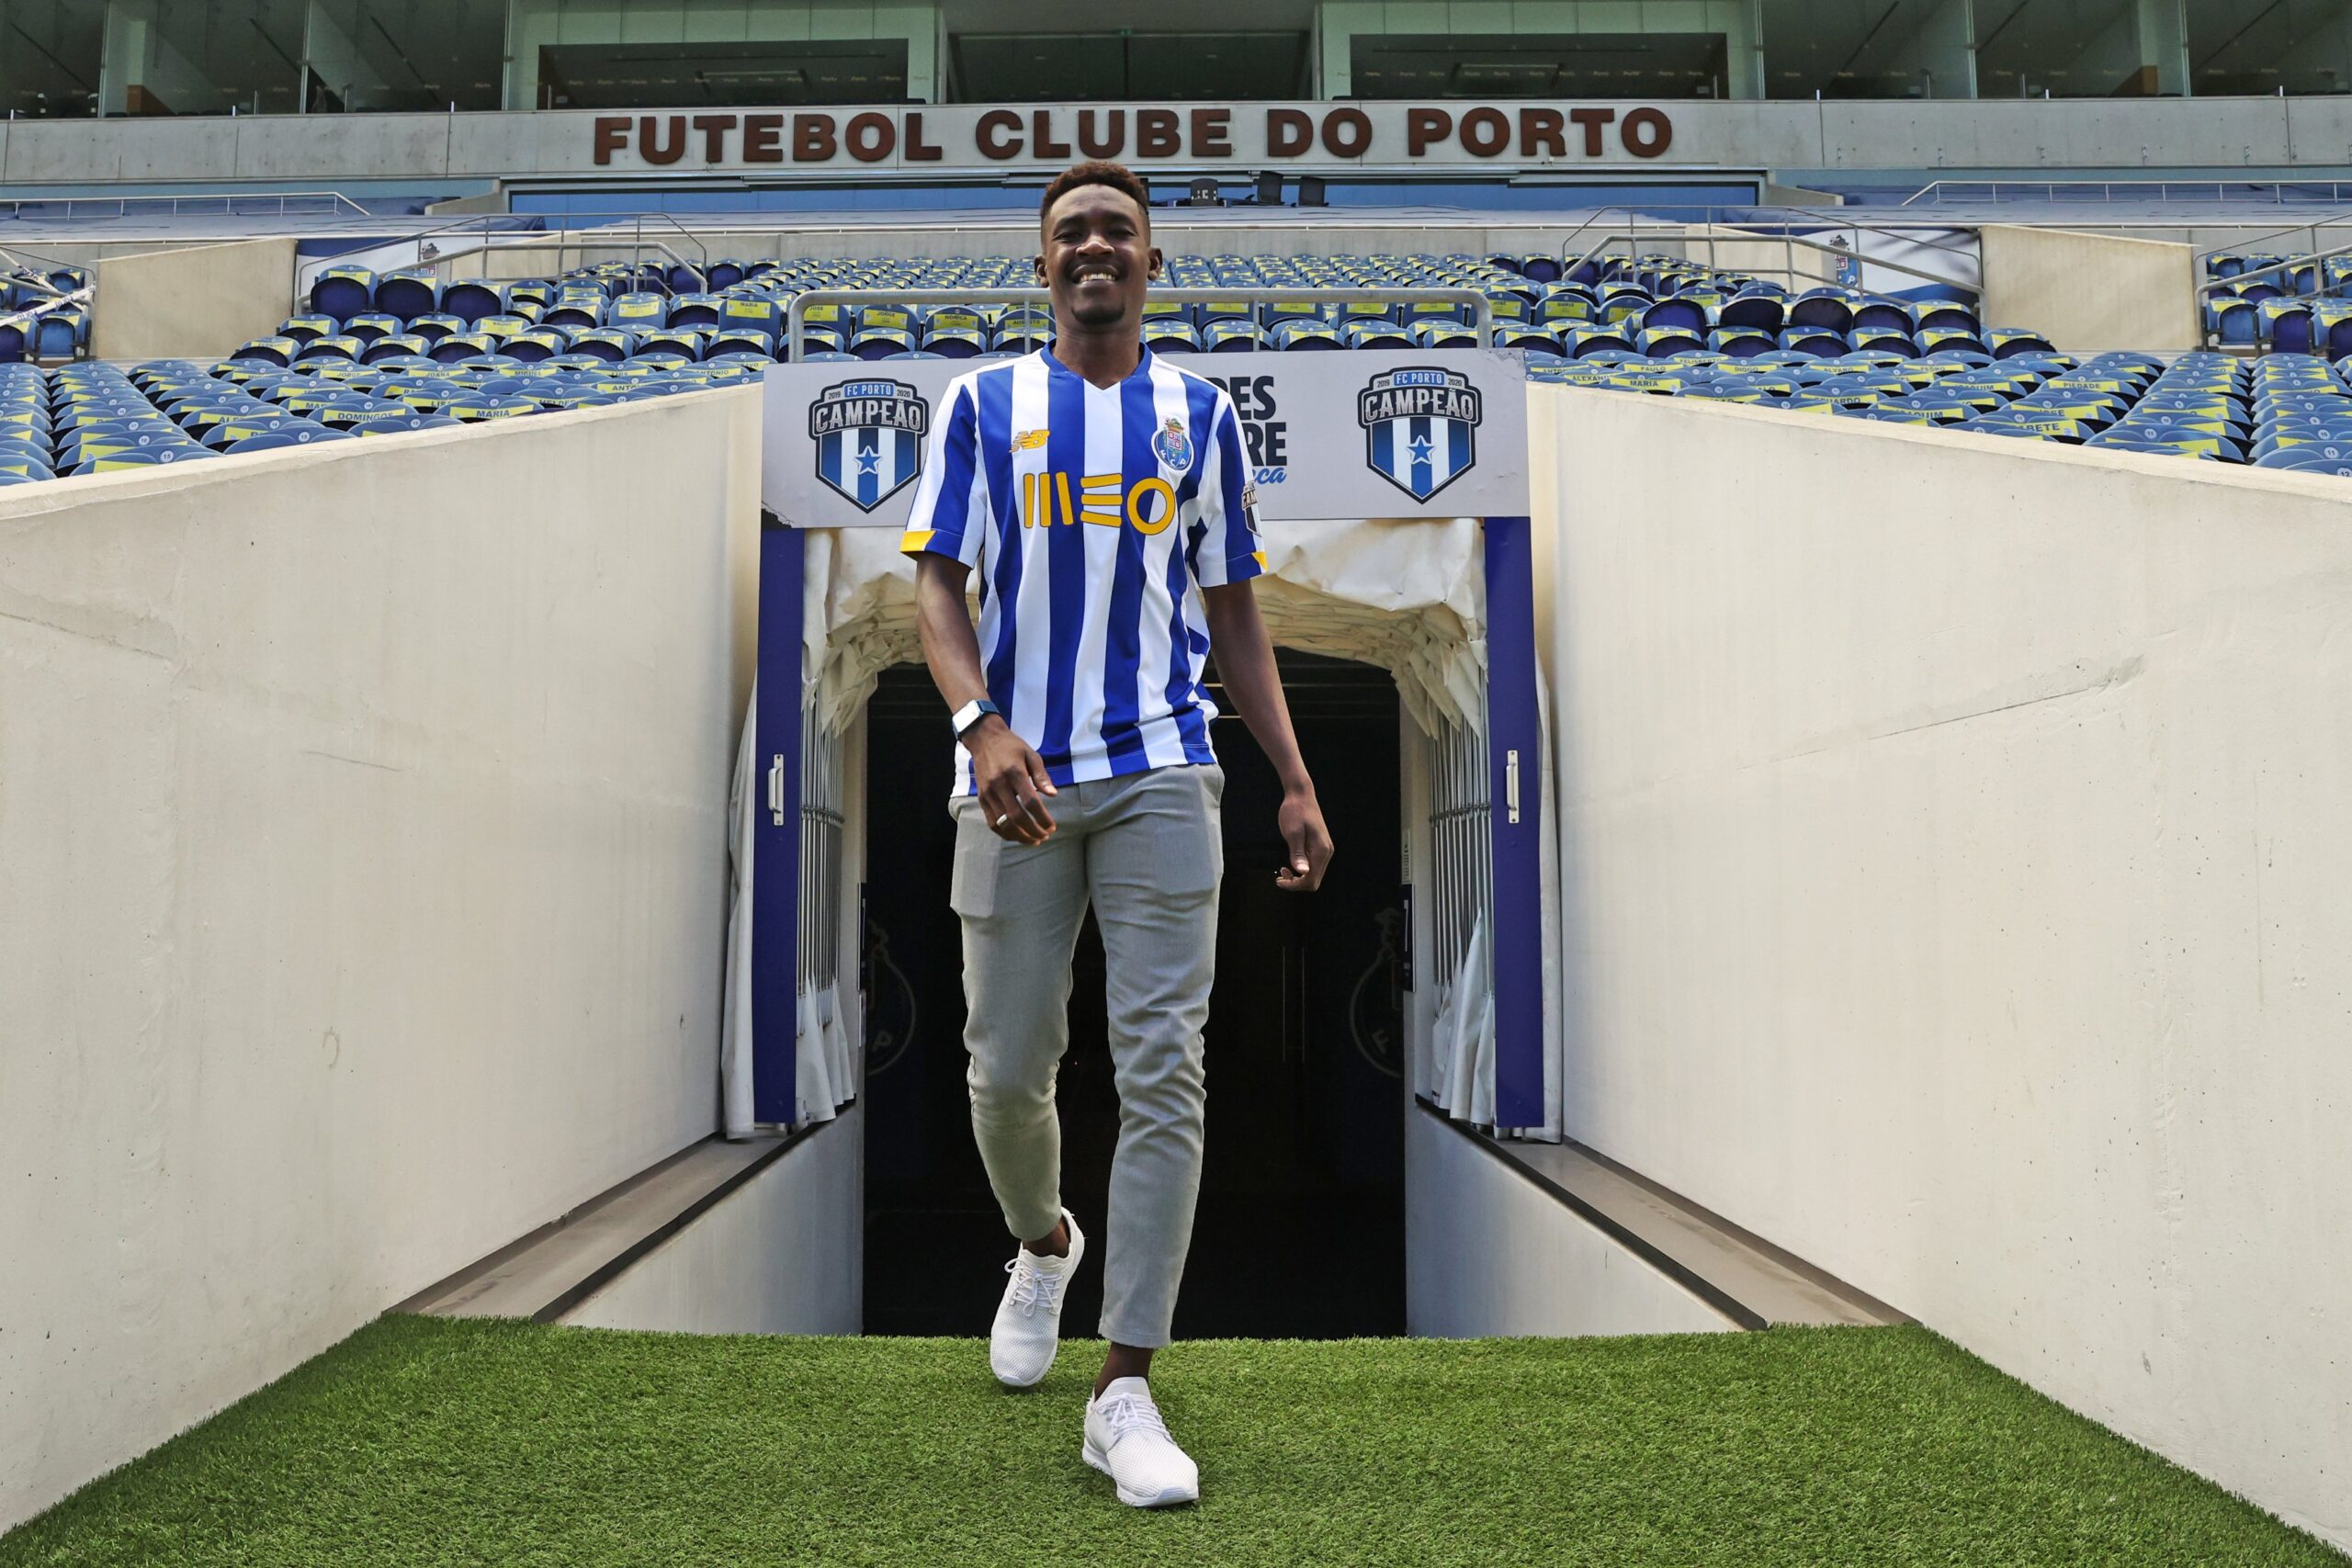 IMG 20200831 170317 49a8421337fcc4e0863c9ced9dcef7f2 scaled - Nigerian rising star joins FC Porto